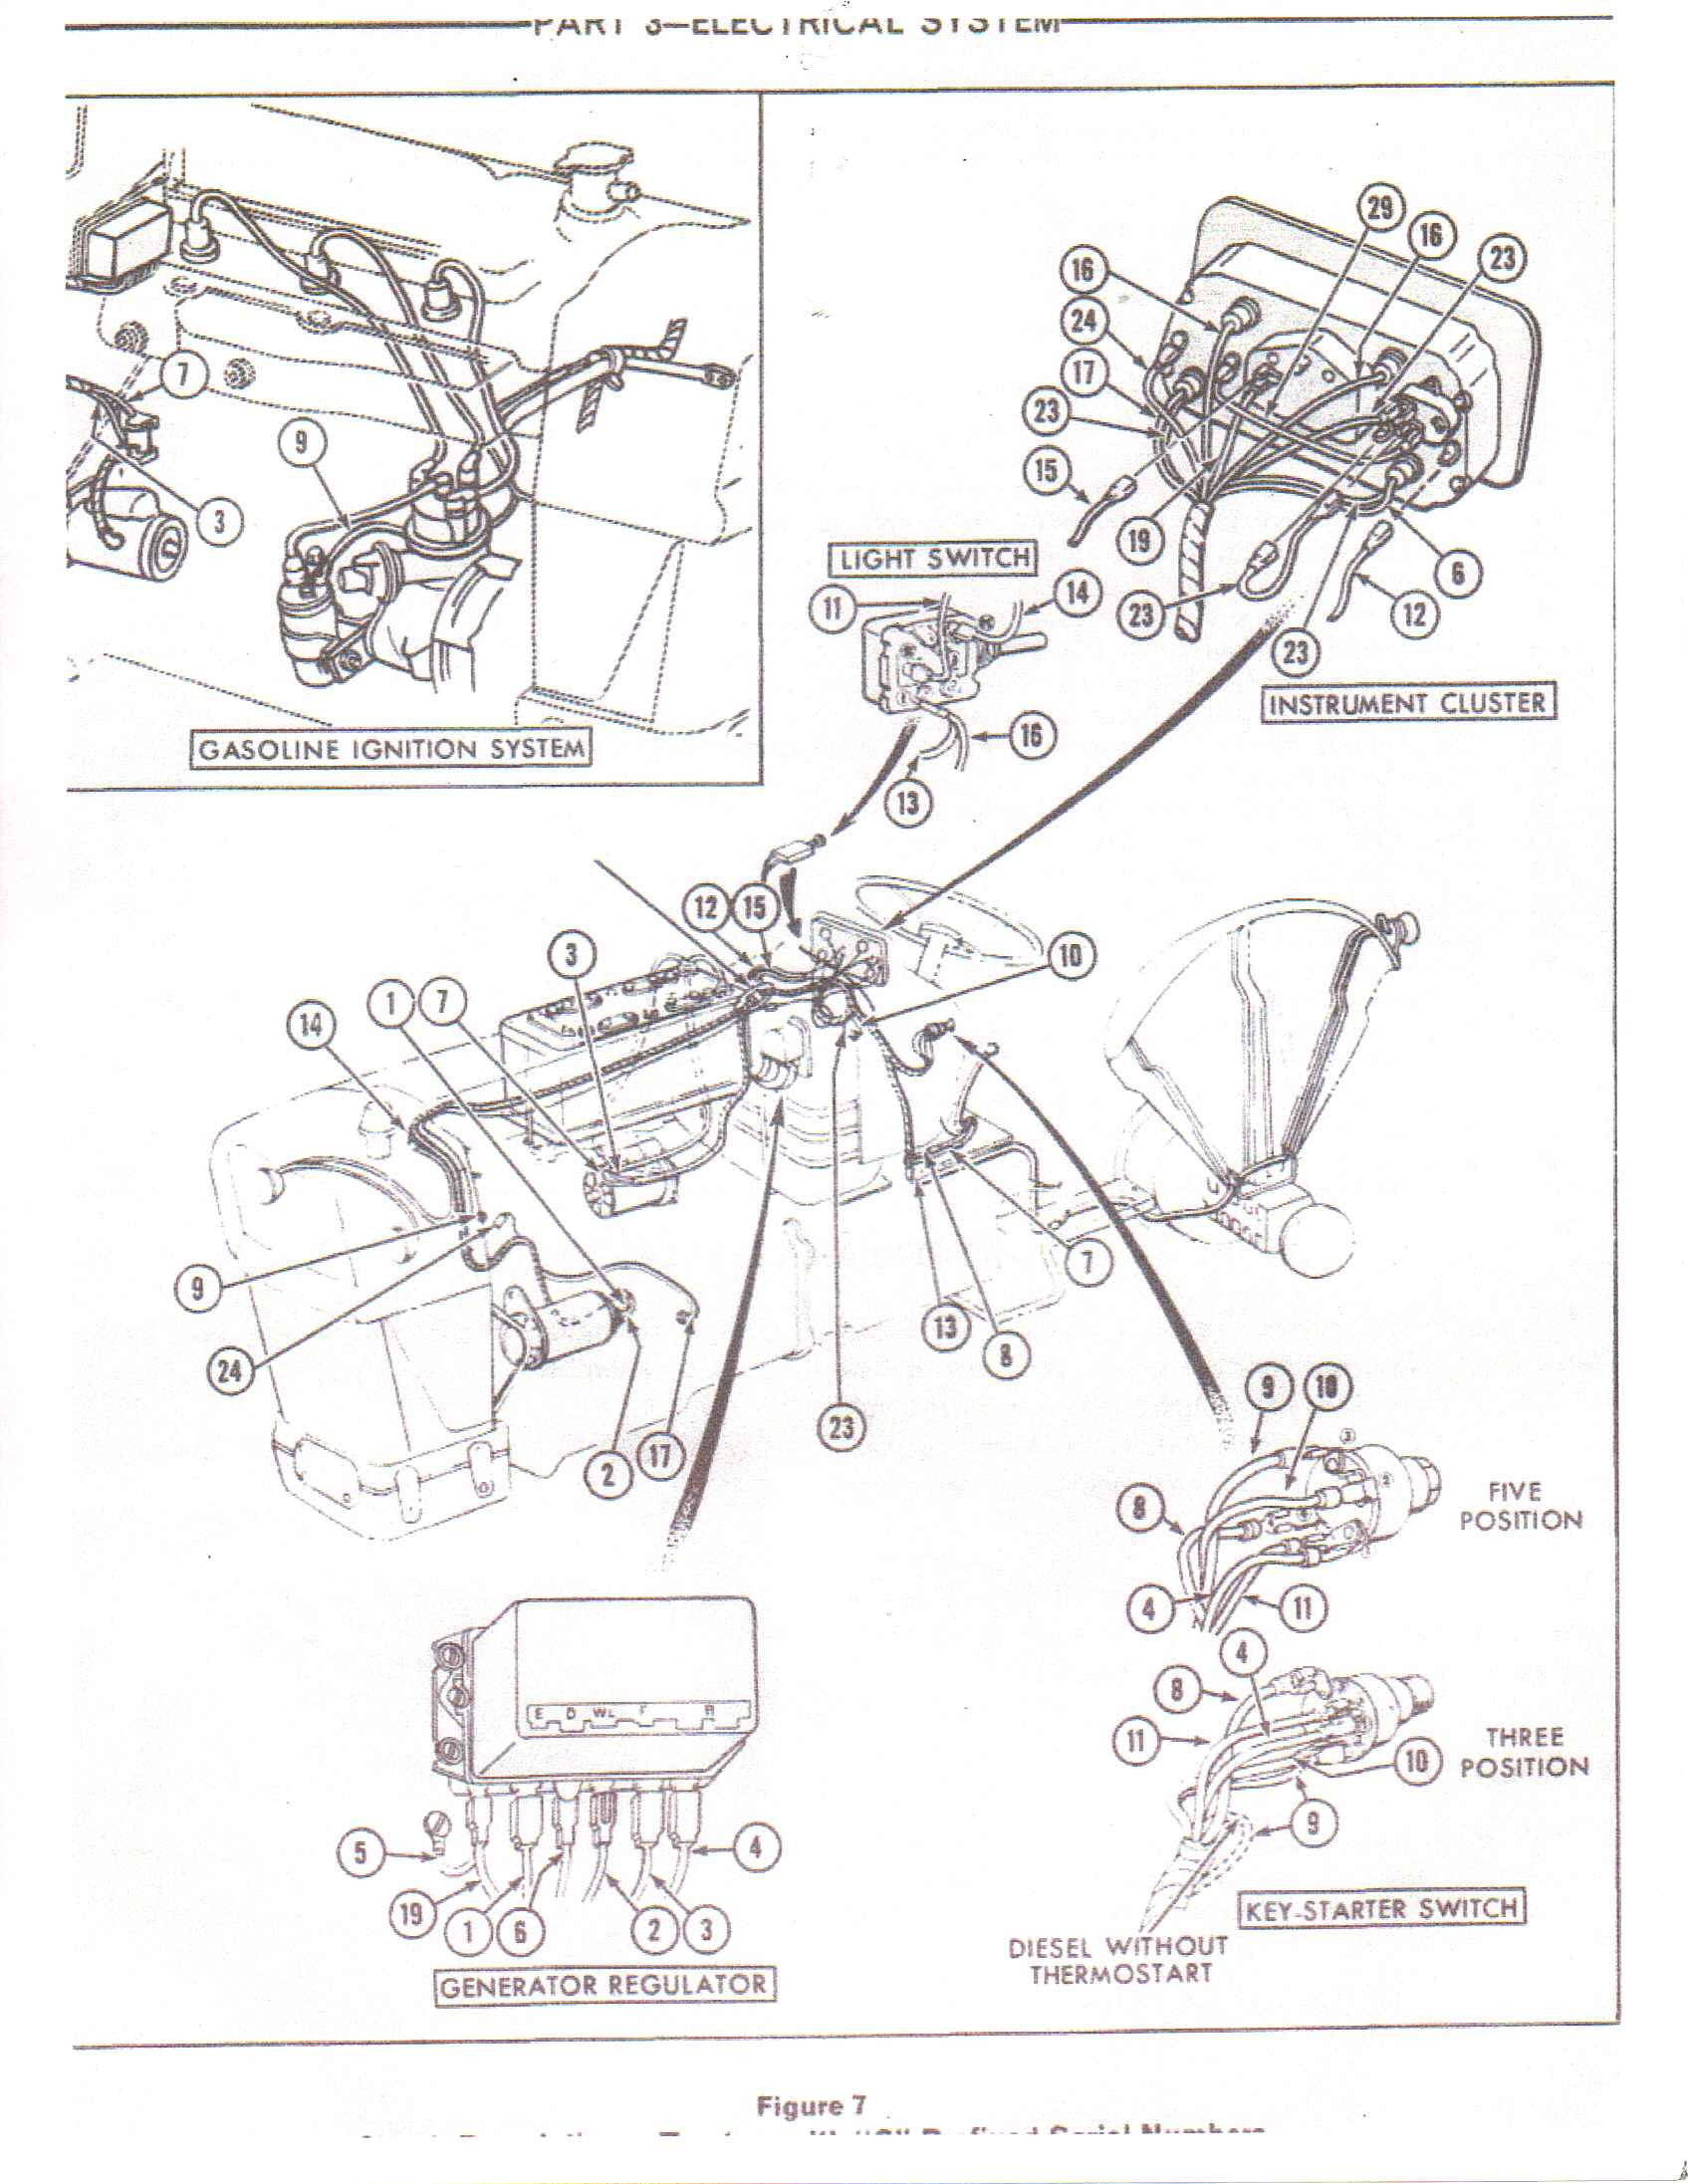 having trouble finding wire harness for a 1973 ford 3000